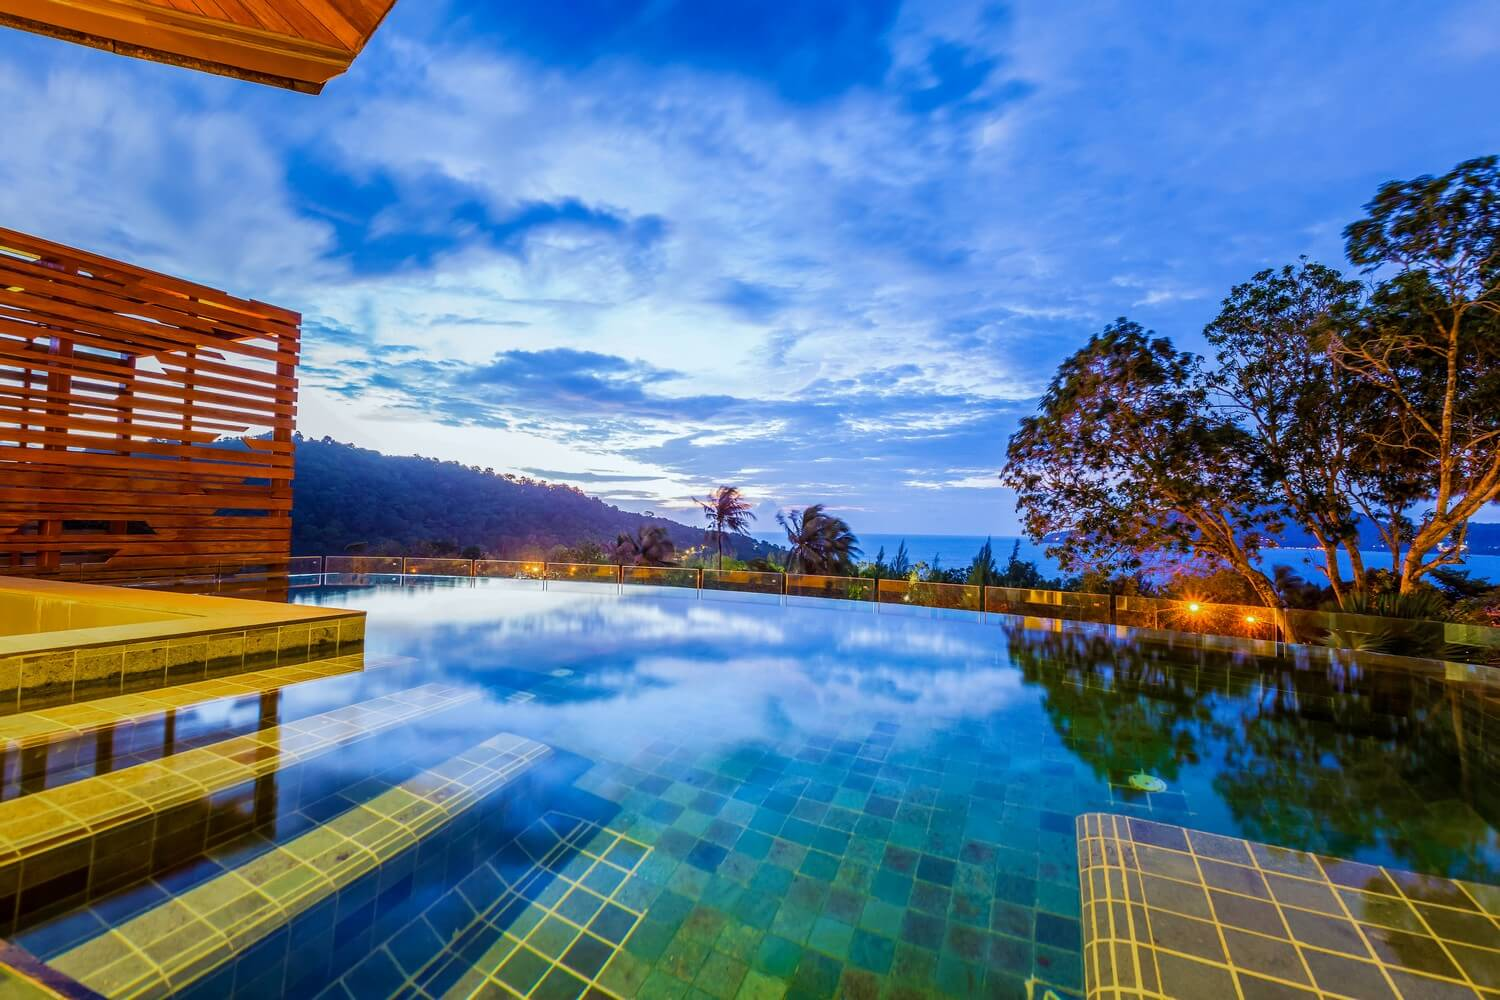 Deluxe Pool Access Seaview | Crest Resort & Pool Villas